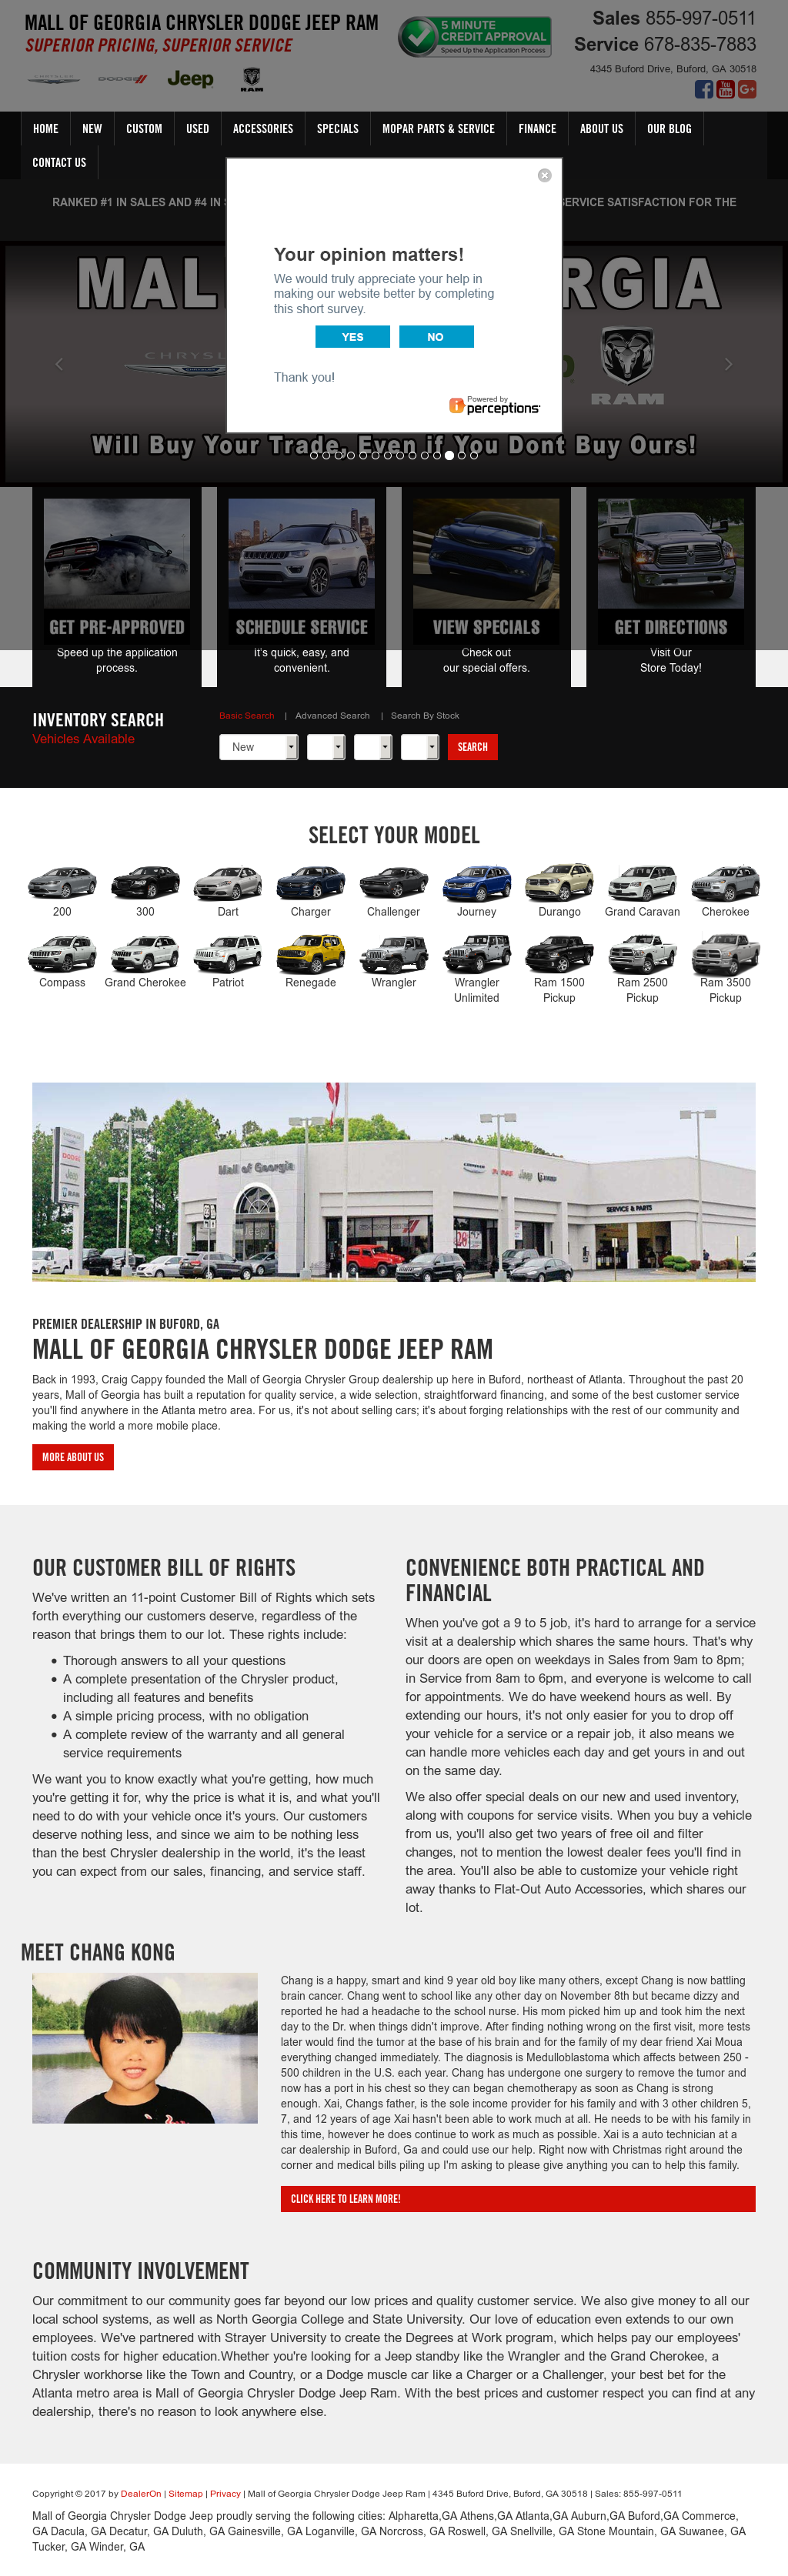 Mall Of Georgia Chrysler Dodge Jeep Website History